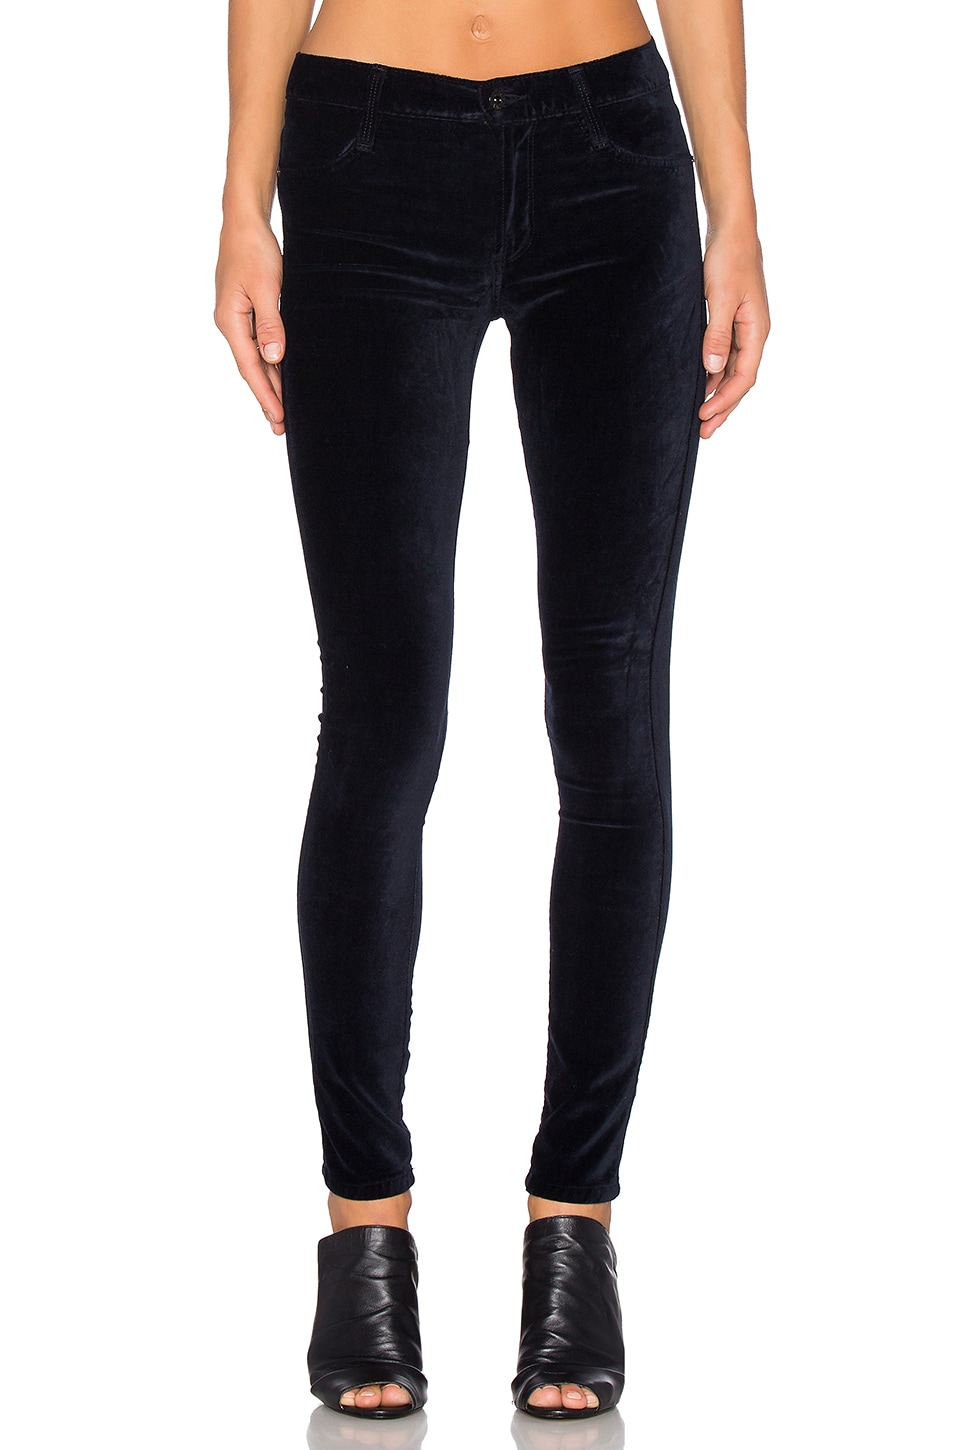 Twiggy Velveteen by James Jeans